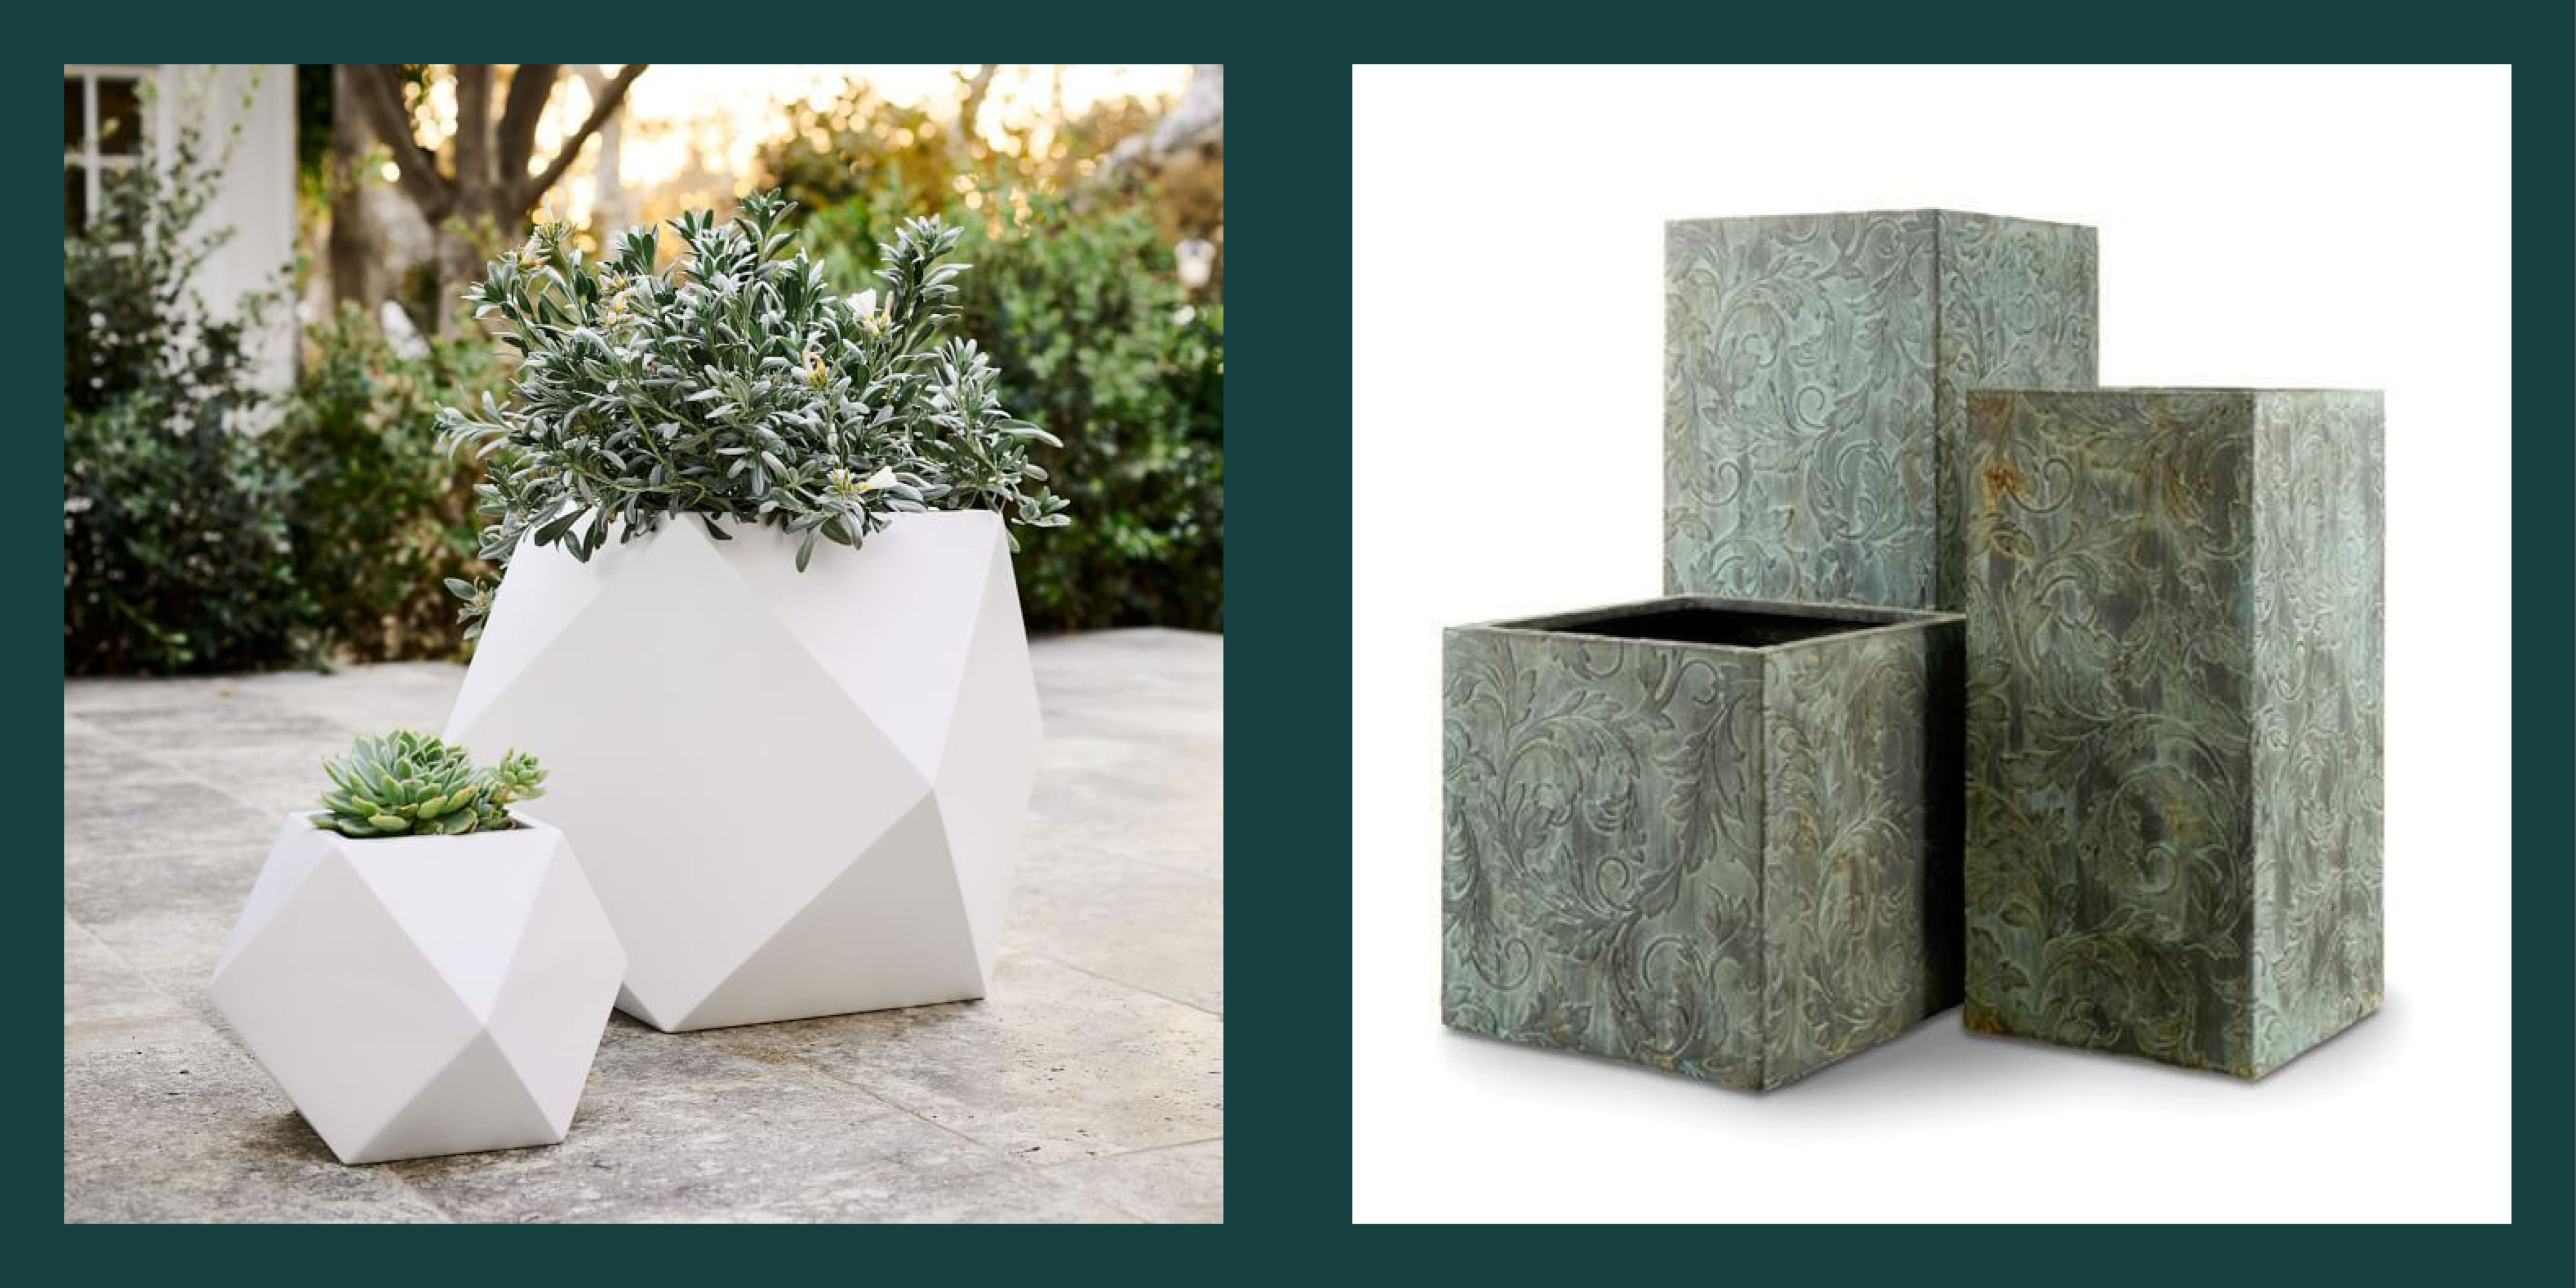 15 Large Planters You Didn't Know You Needed